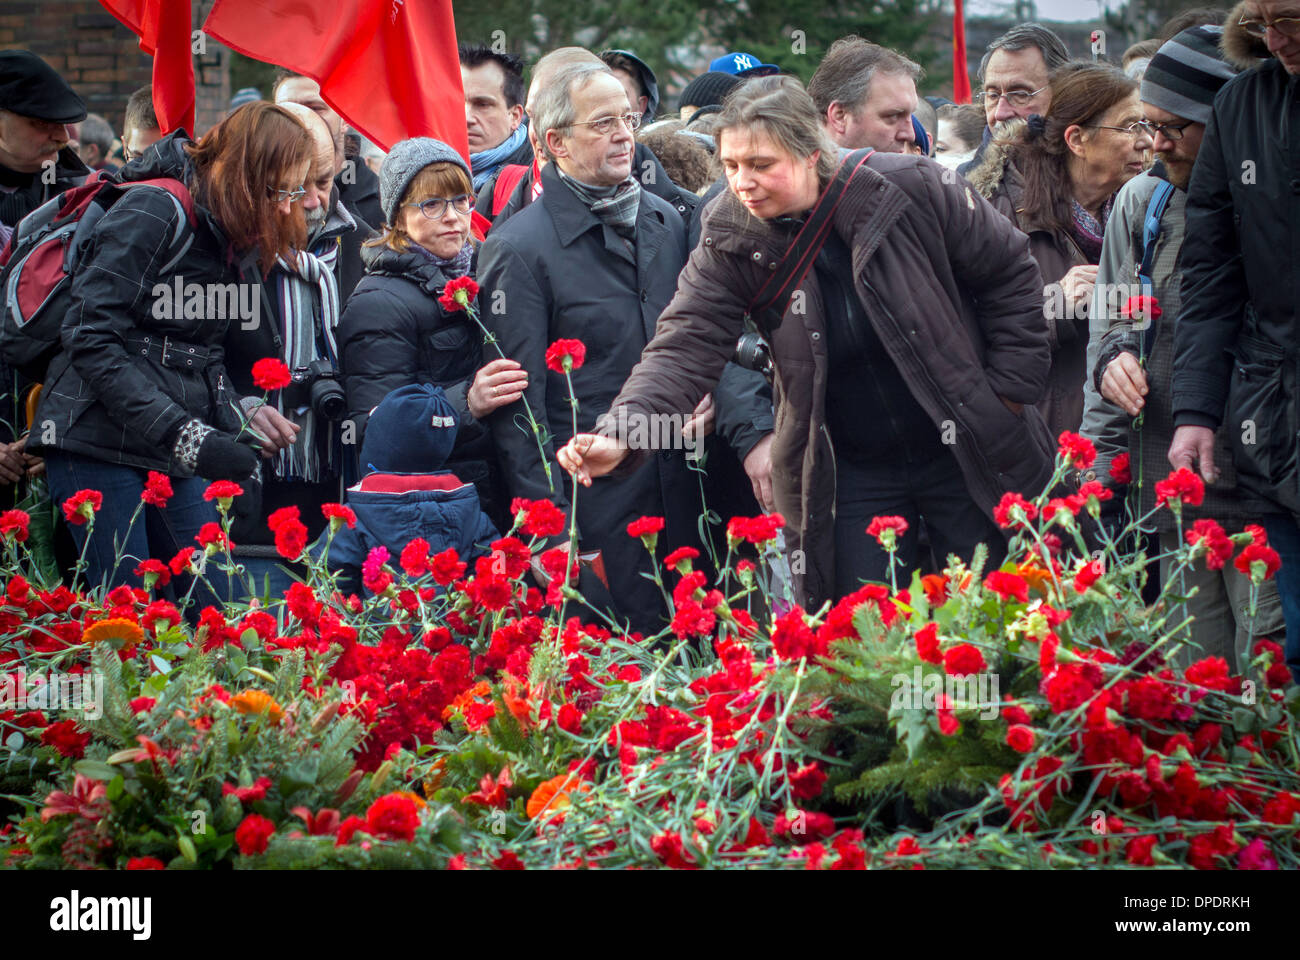 Carnations laid at 'Memorial for Socialists', Friedricksfelde Cemetery,Berlin. In memory of Rosa Luxemburg & Karl Liebknecht. - Stock Image